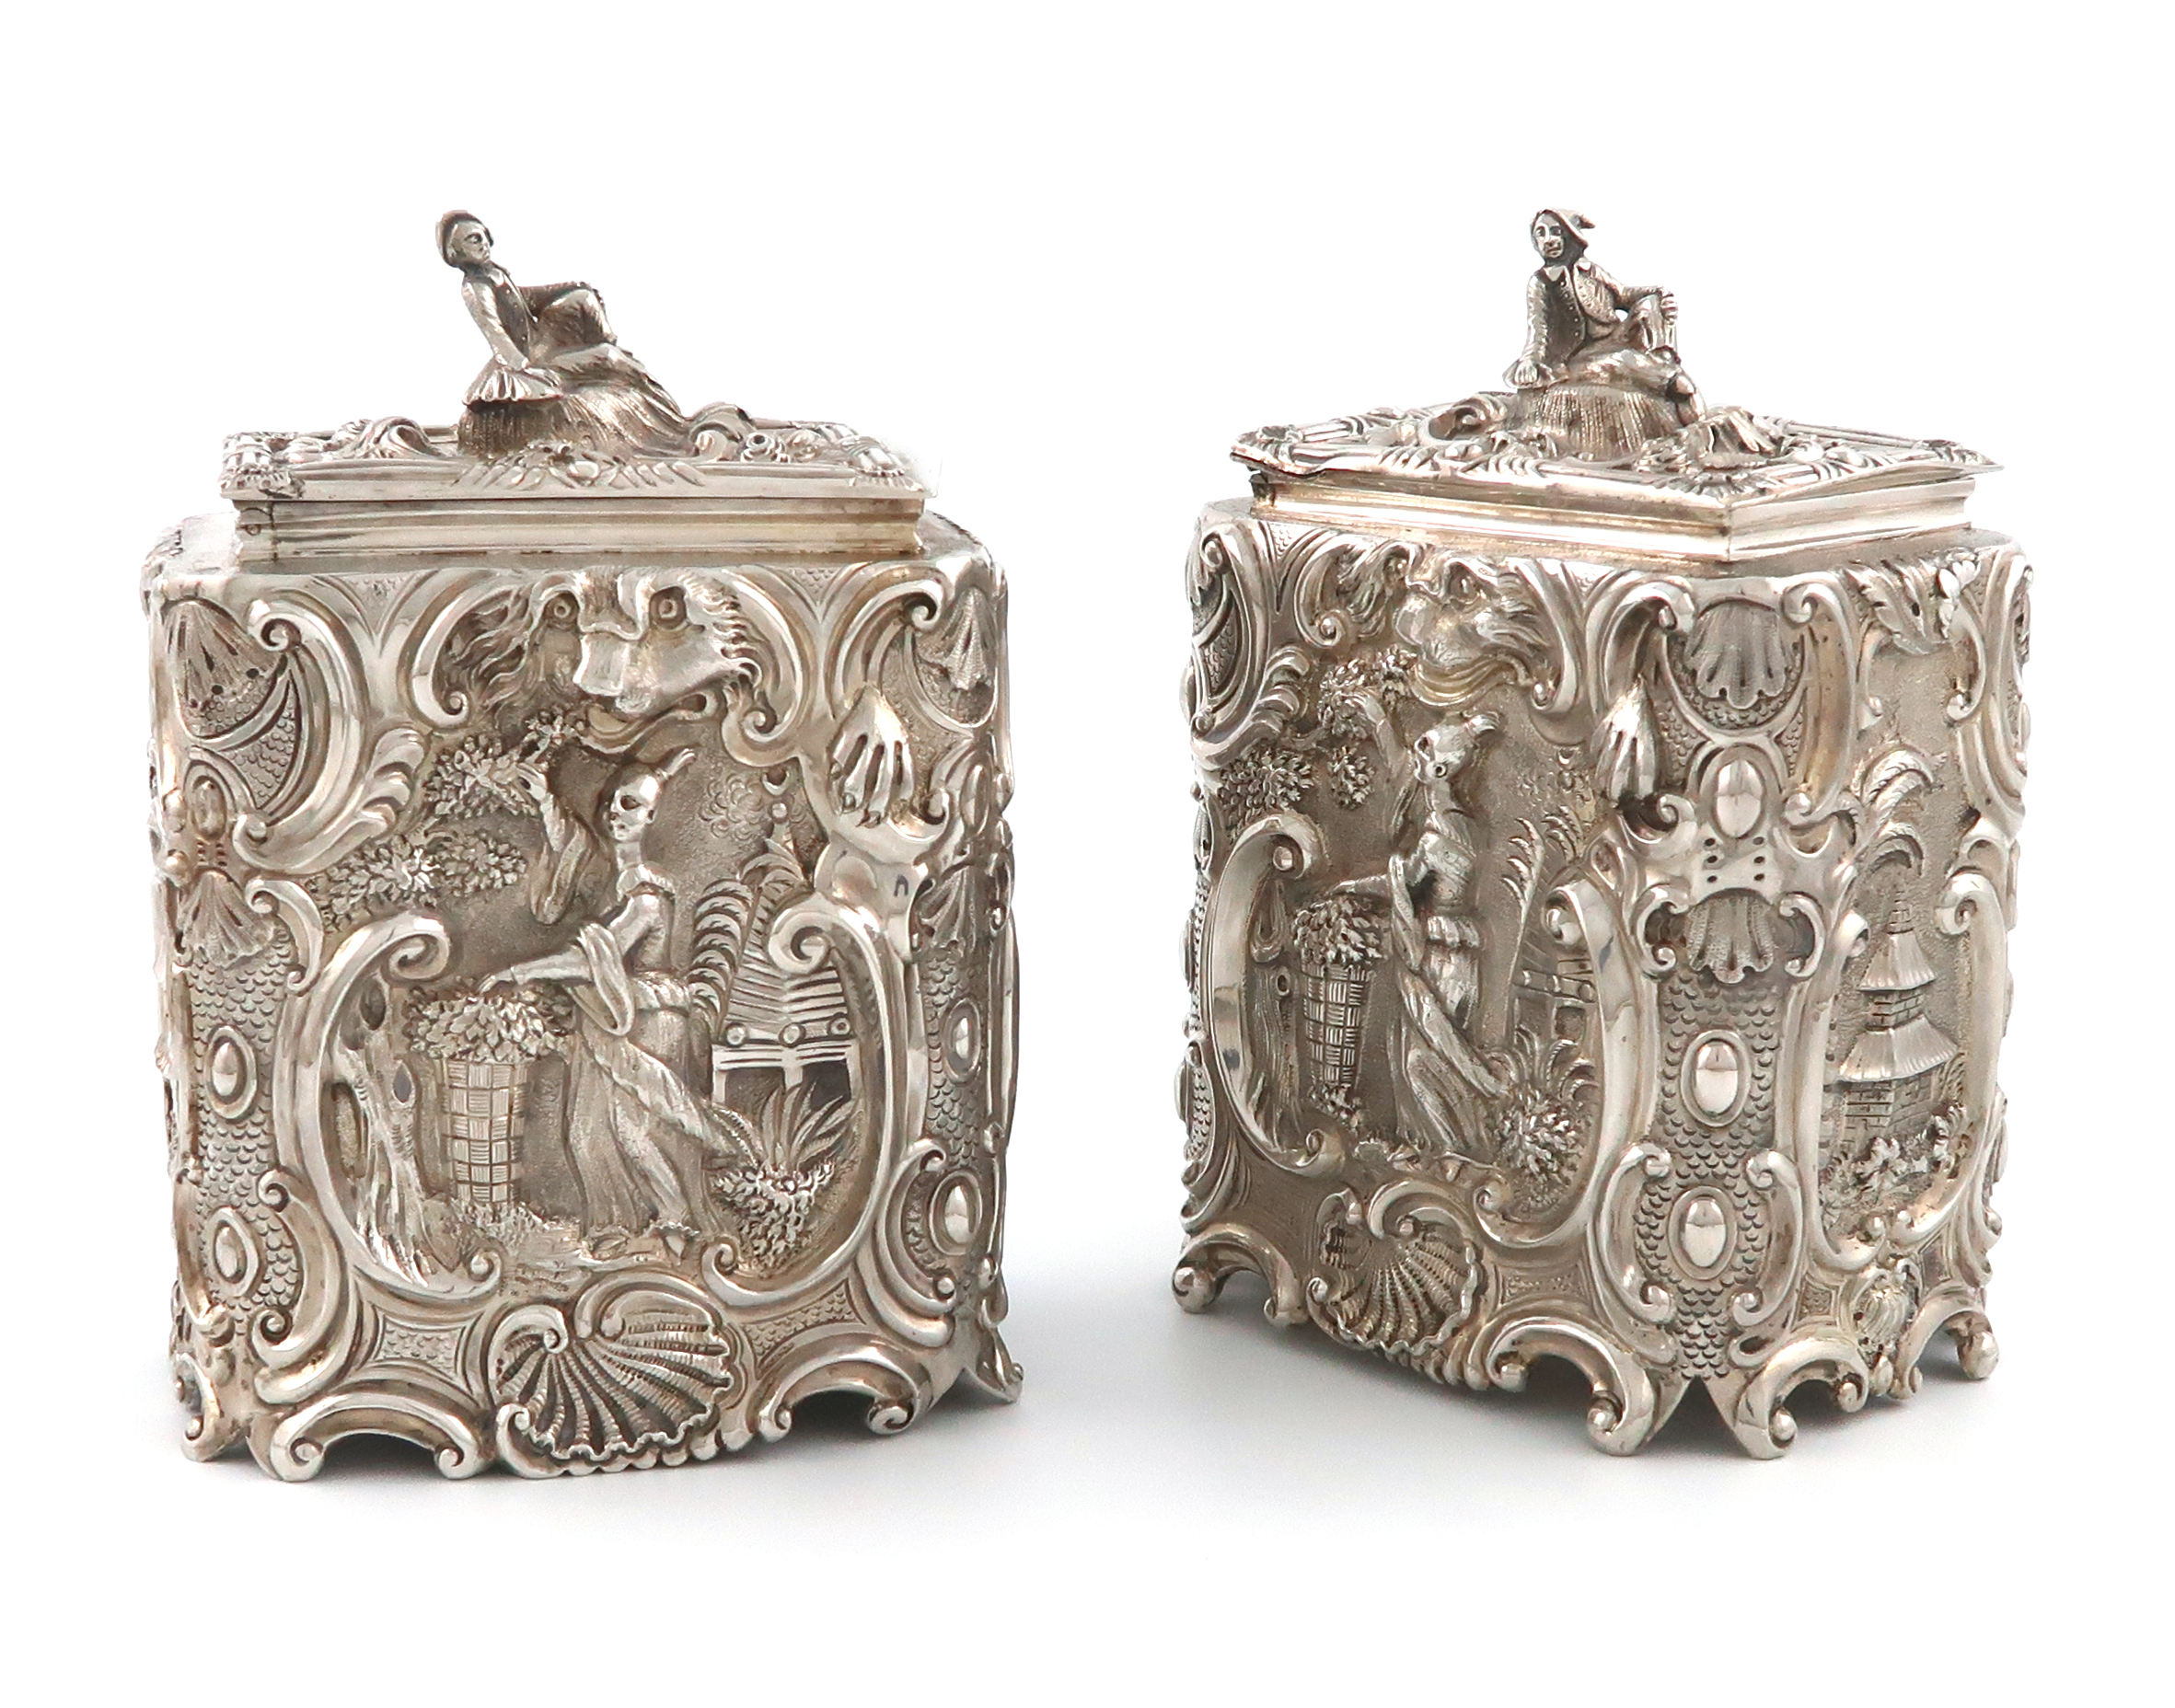 After Paul De Lamerie, a pair of William IV silver Chinoiserie tea caddies, by Michael Starkey,